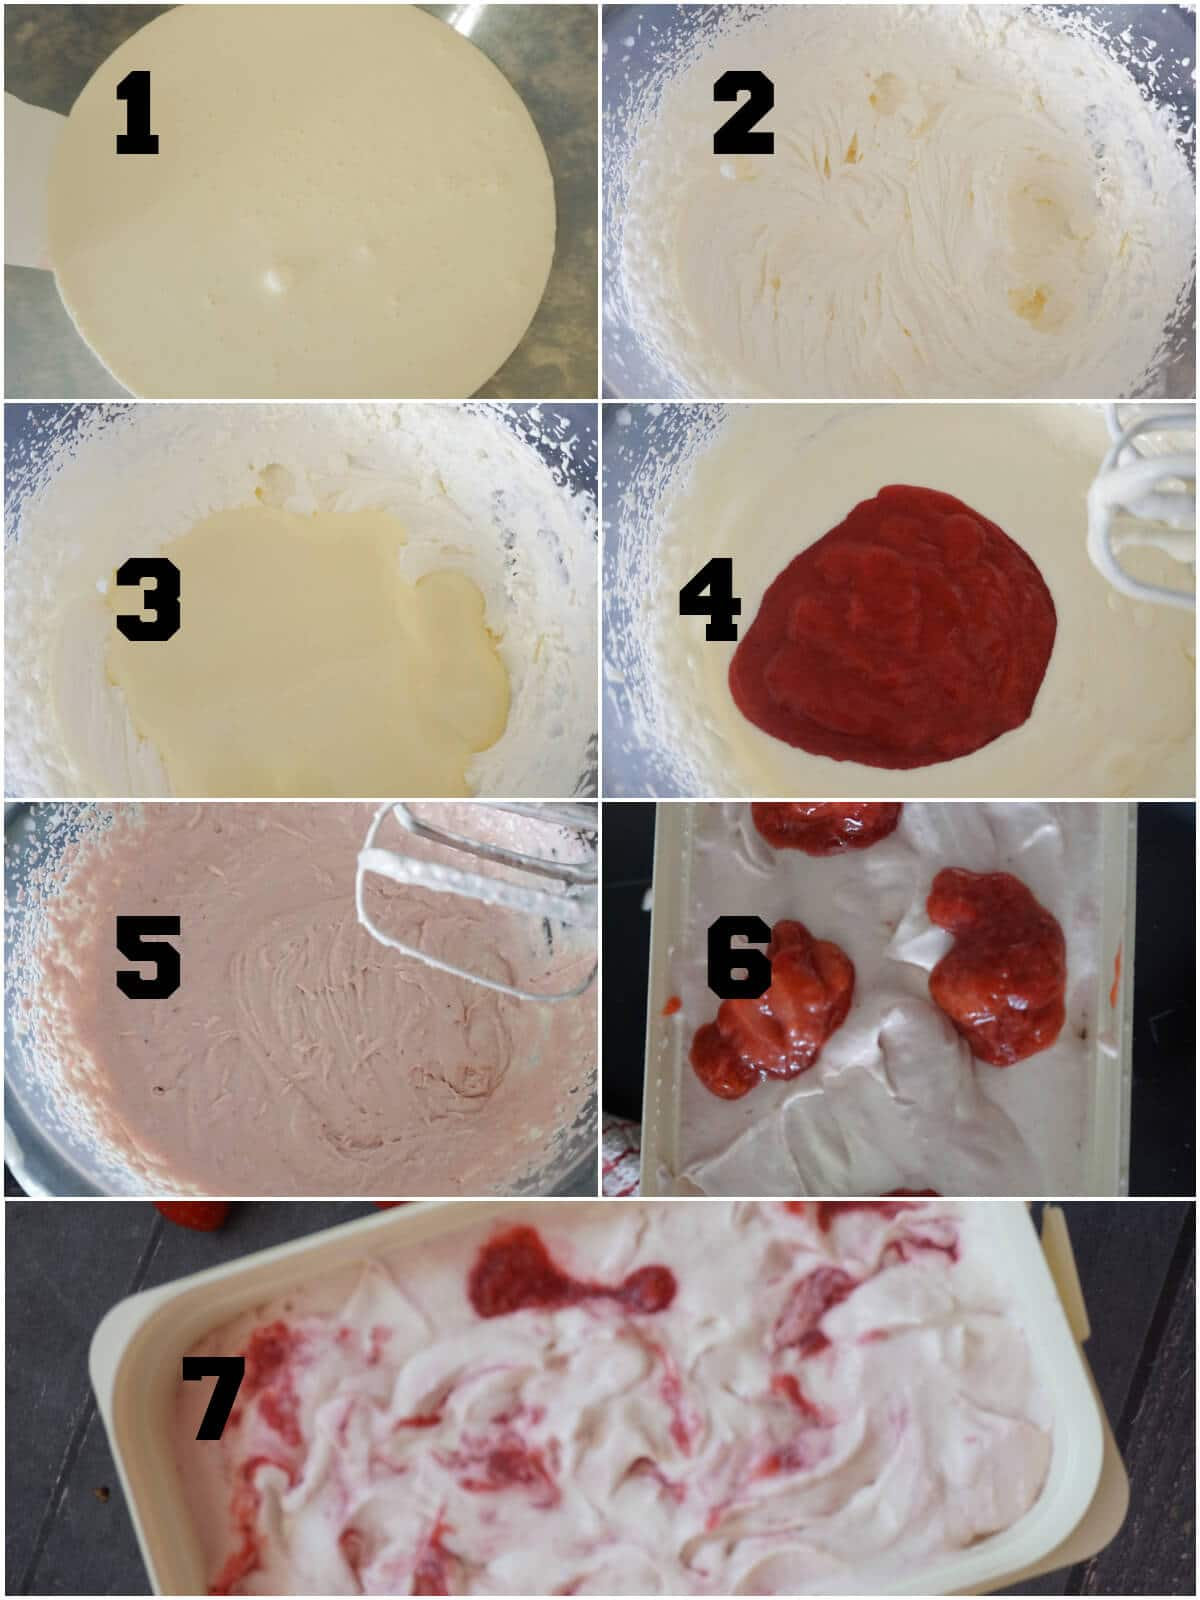 Collage of 7 photos to show how to make strawberry ripple ice cream